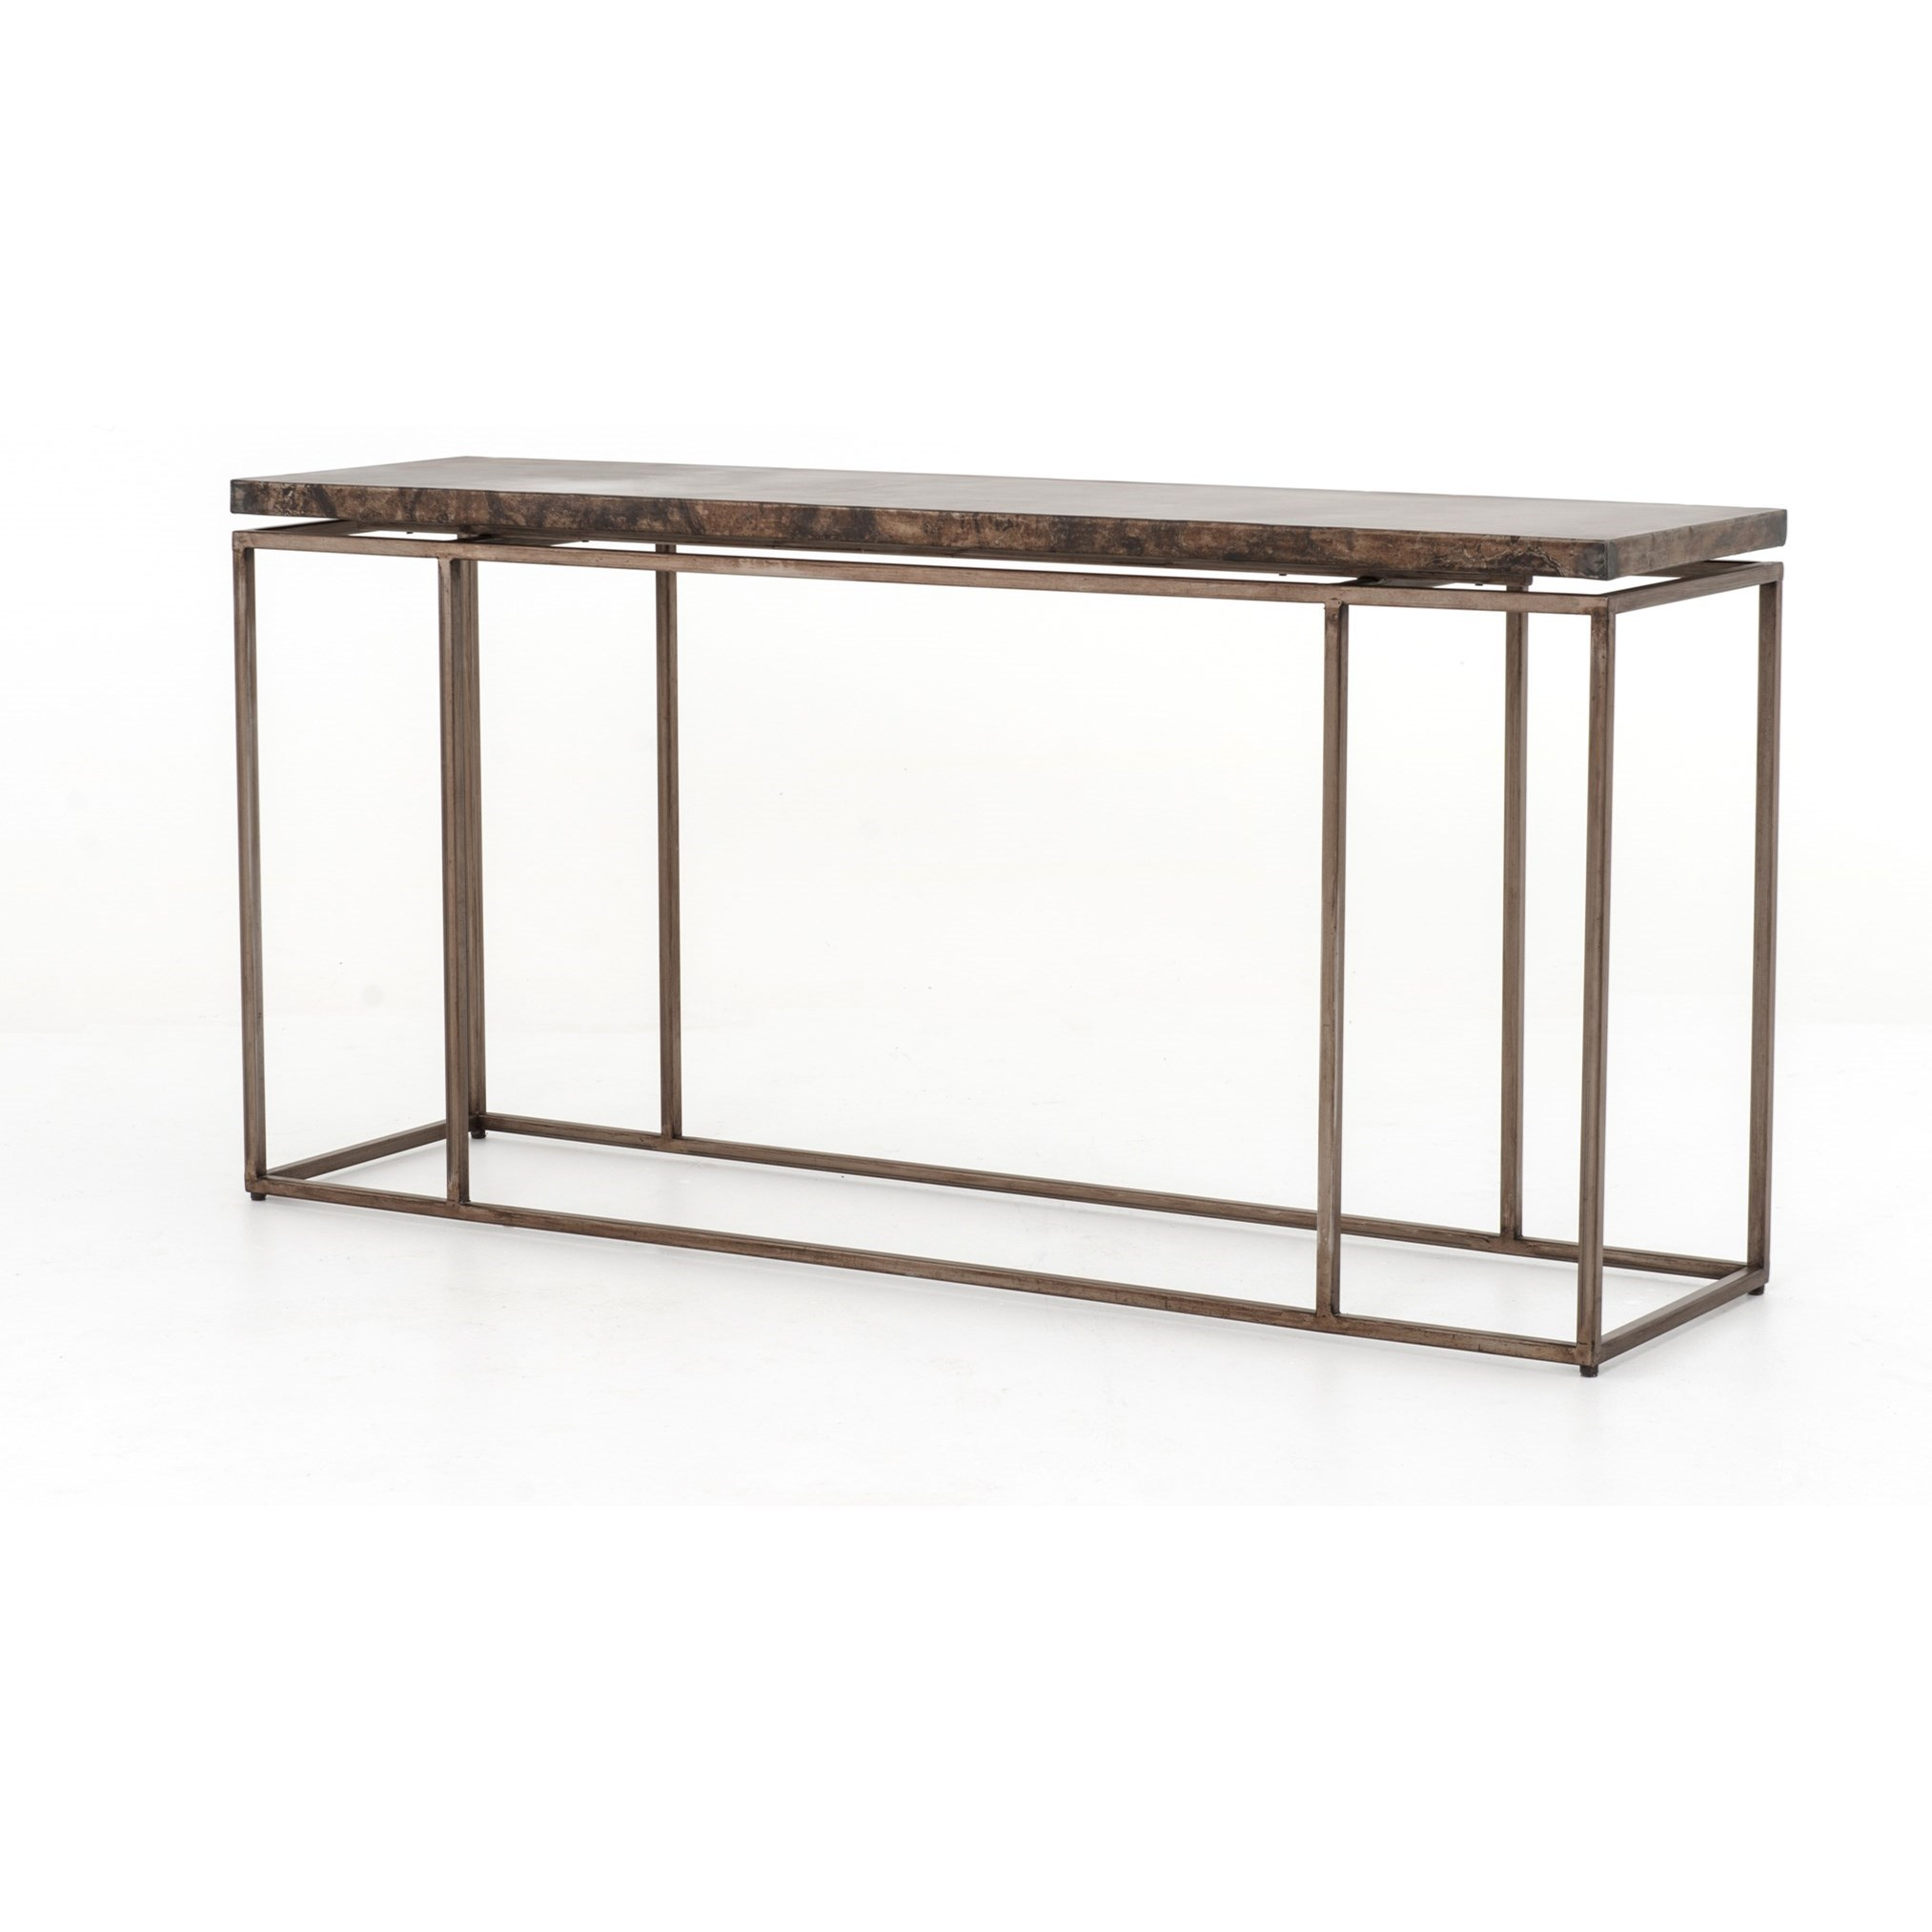 Four Hands Wesson Roman Console Table - Item Number: UWES-010